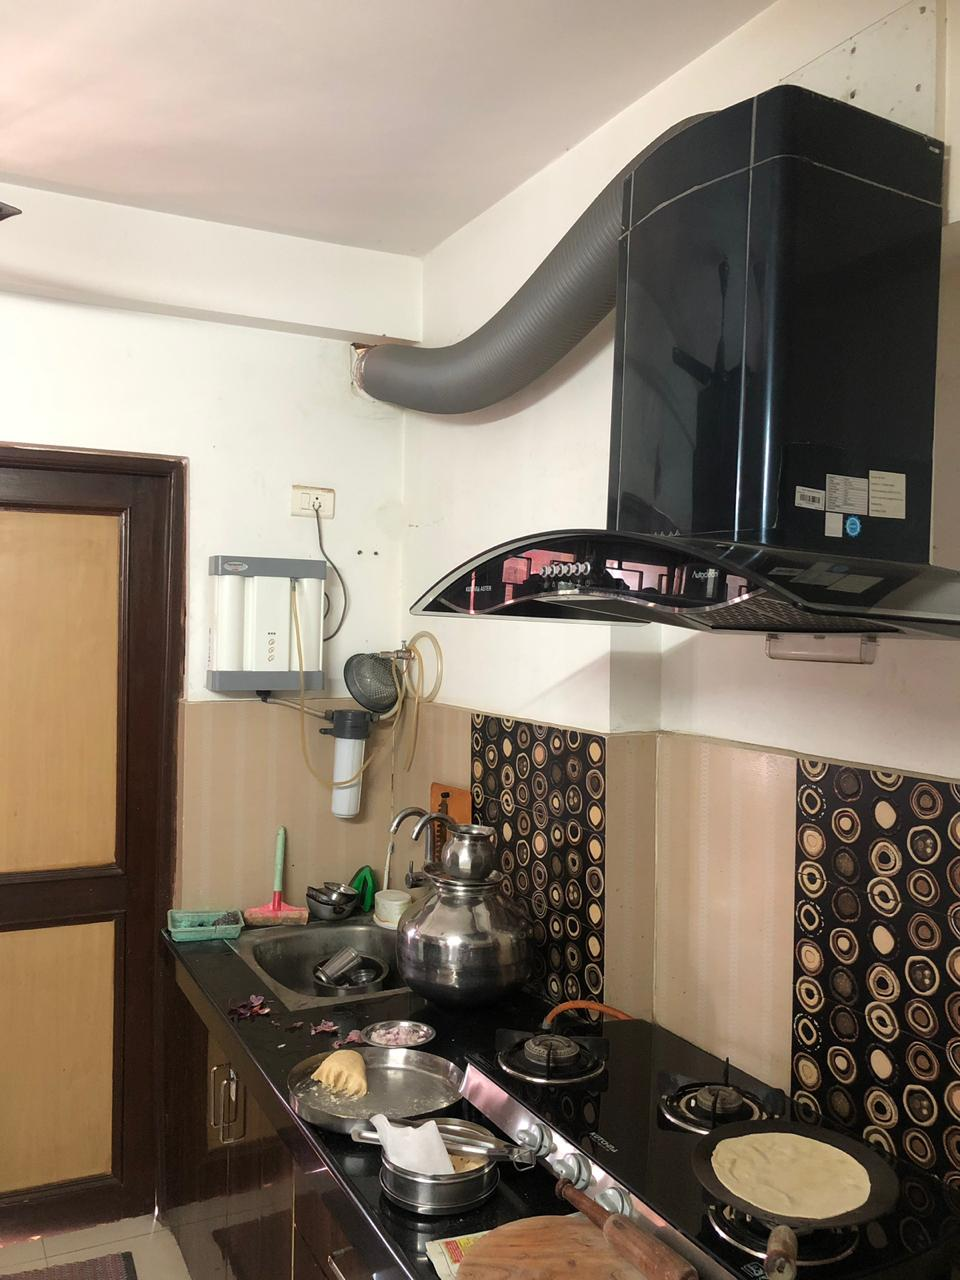 2bhk Fully Furnished Apartment On Rent At Somalwada